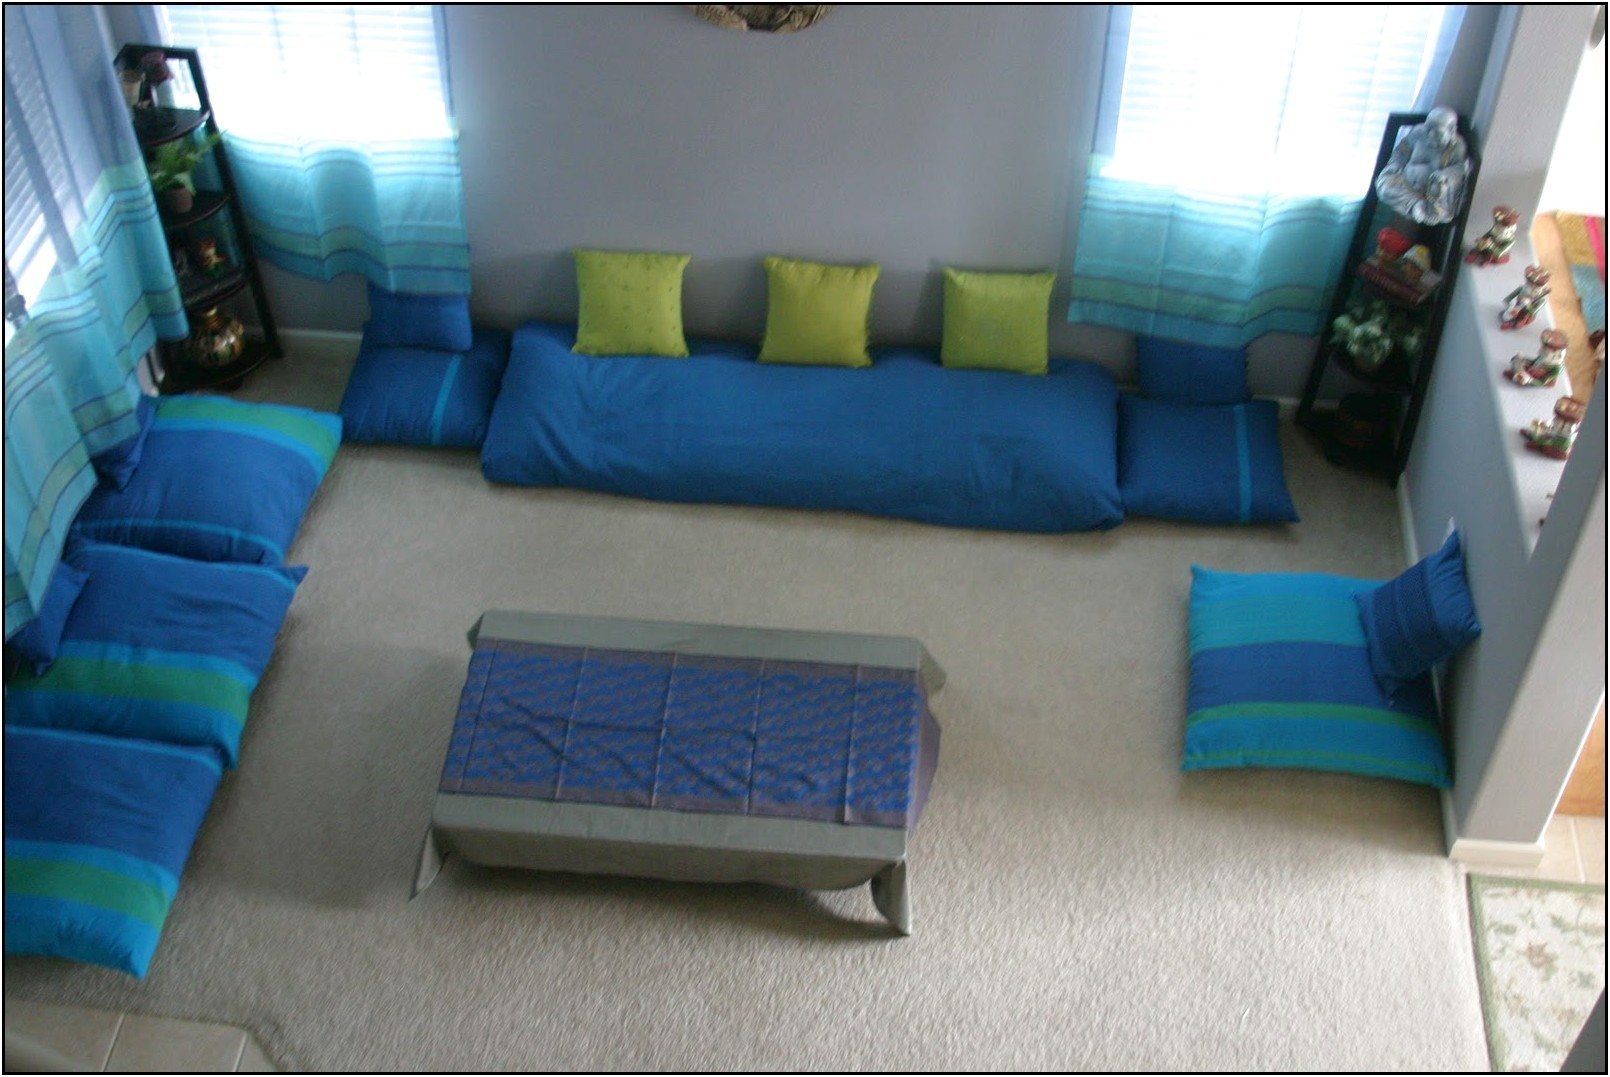 Sofa arrangement in living room